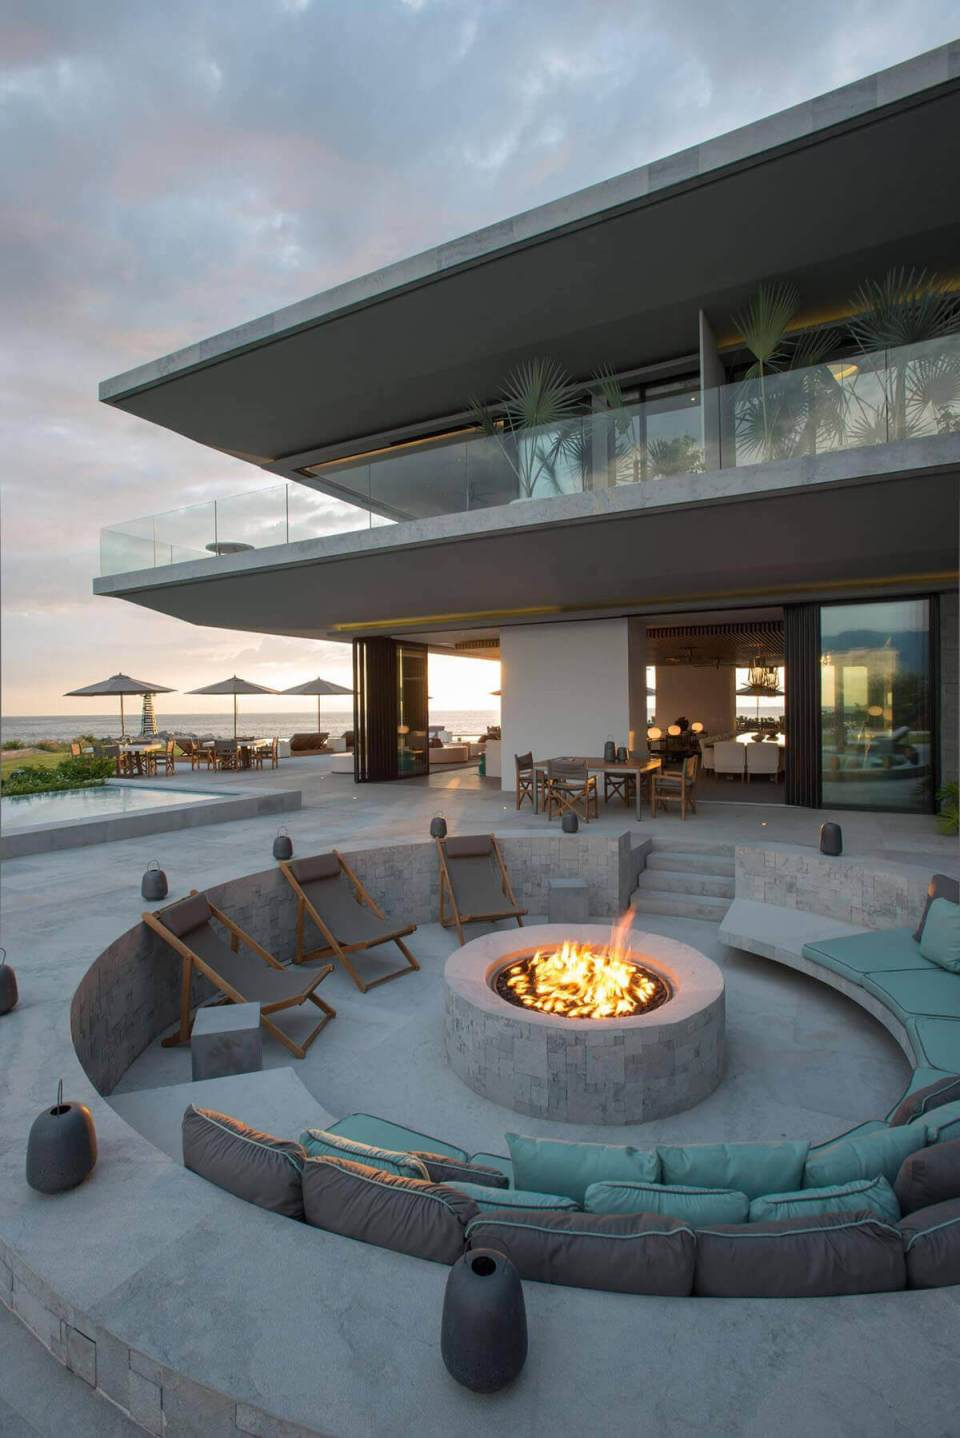 A Sunken Concrete Firepit with Comfortable Seating | Awesome Firepit Area Ideas For Your Outdoor Activities